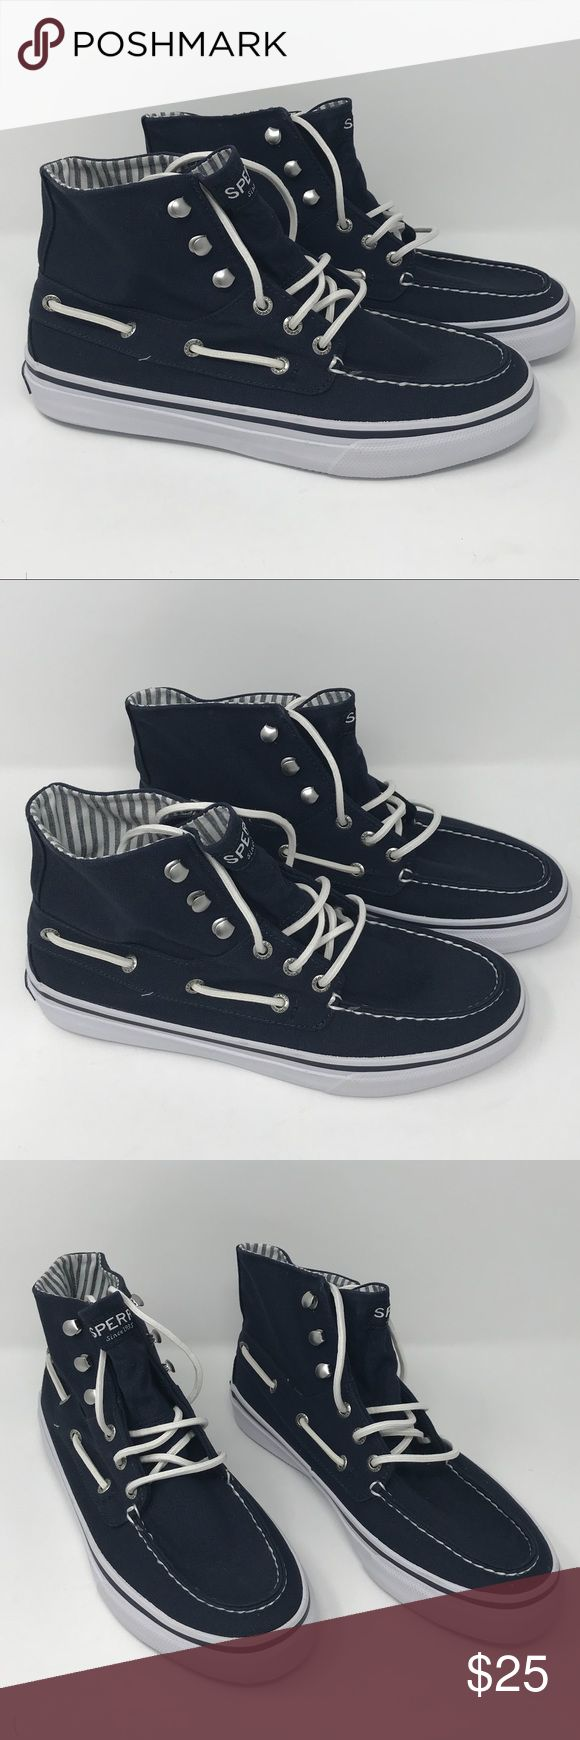 Sperry Top-Sider Bahama Sneaker Boot Sperry Top-Sider Men's Bahama Sneaker Boot  Size: 9  Color: Navy Blue / White  Condition: New without original box Sperry Shoes Sneakers